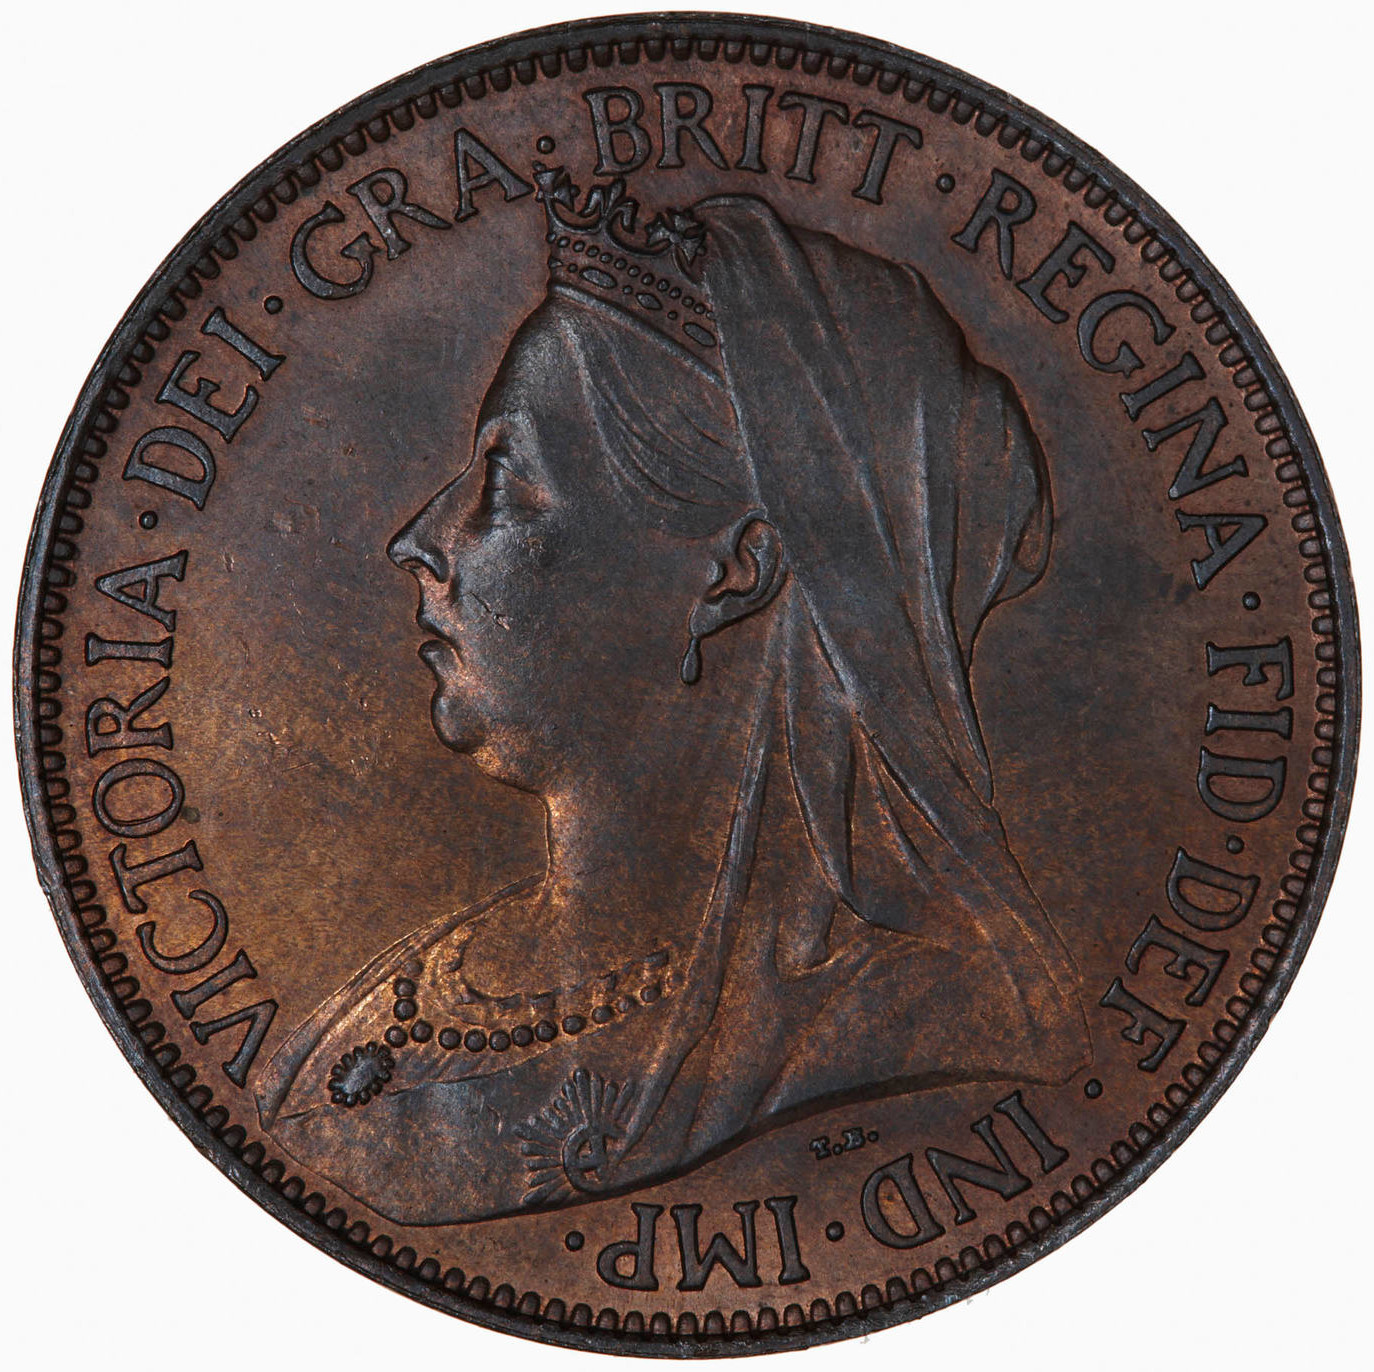 Halfpenny 1895: Photo Coin - Halfpenny, Queen Victoria, Great Britain, 1895